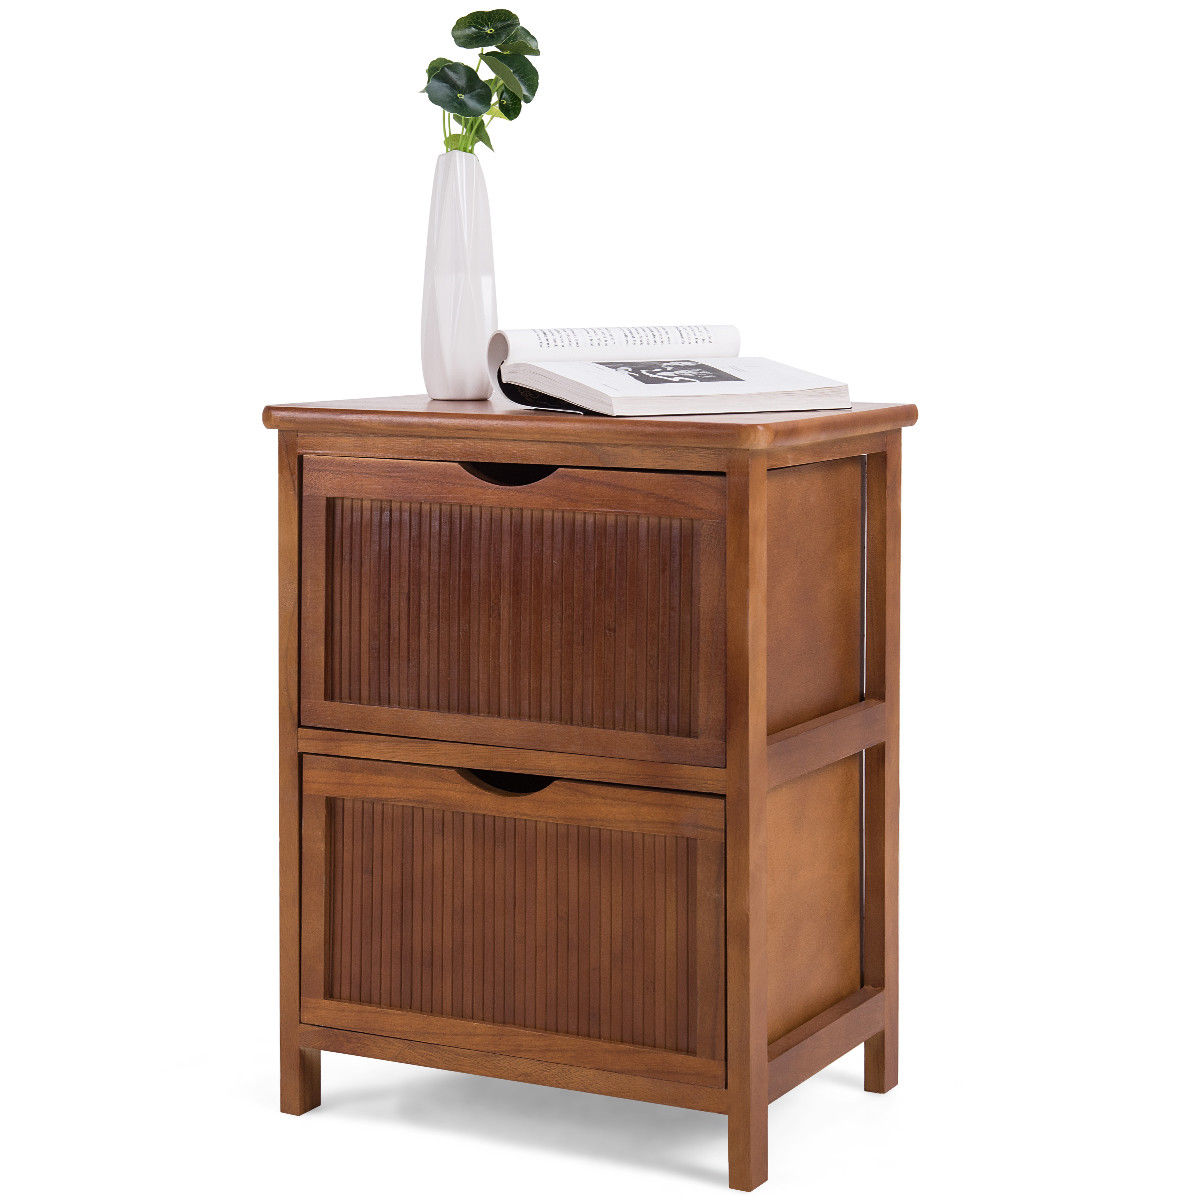 2 Drawers Nightstand Contemporary Vintage Bedside Table